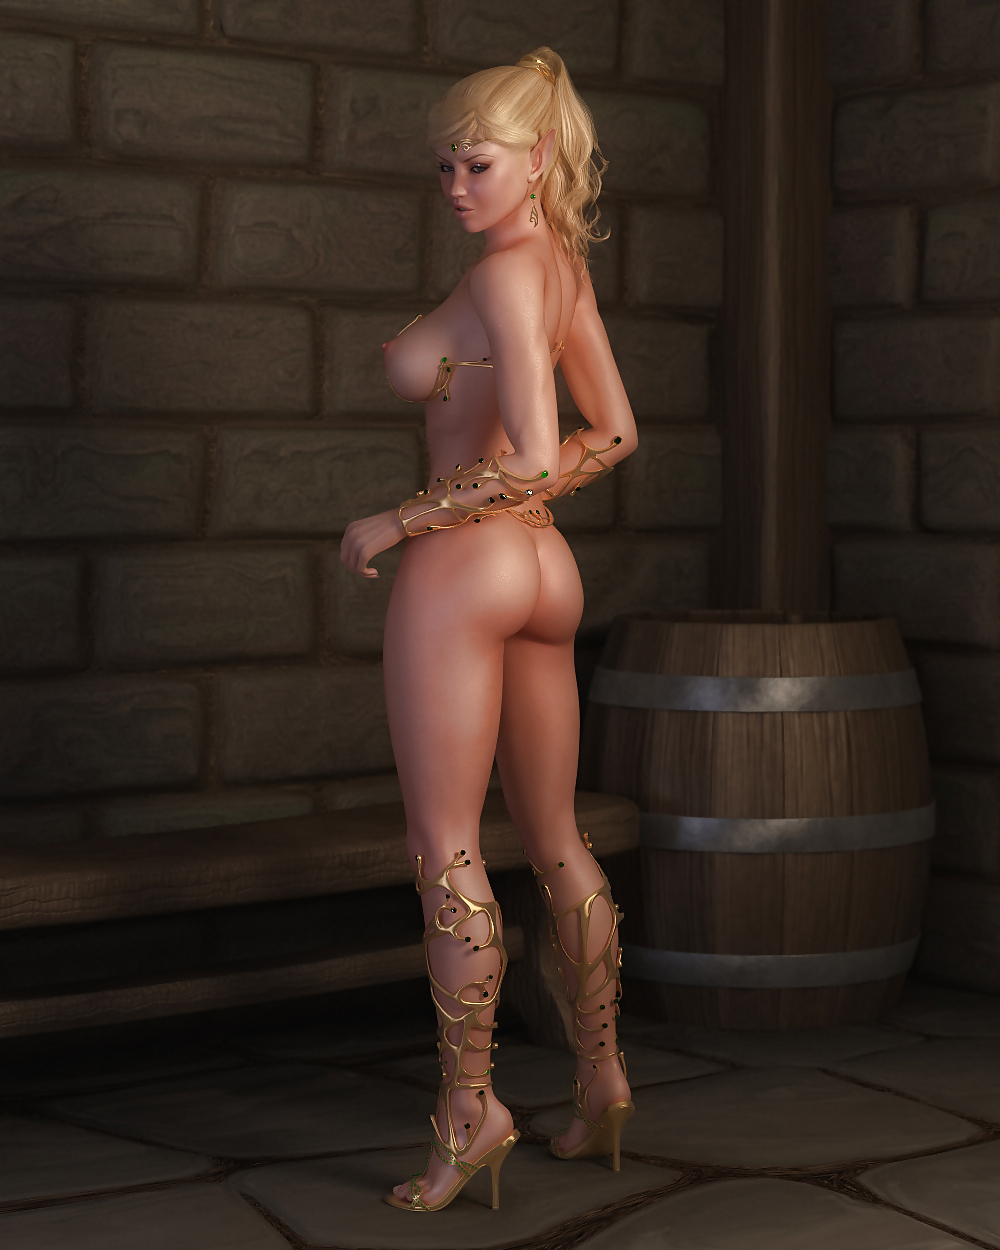 High elf nude, video erotic art amateur